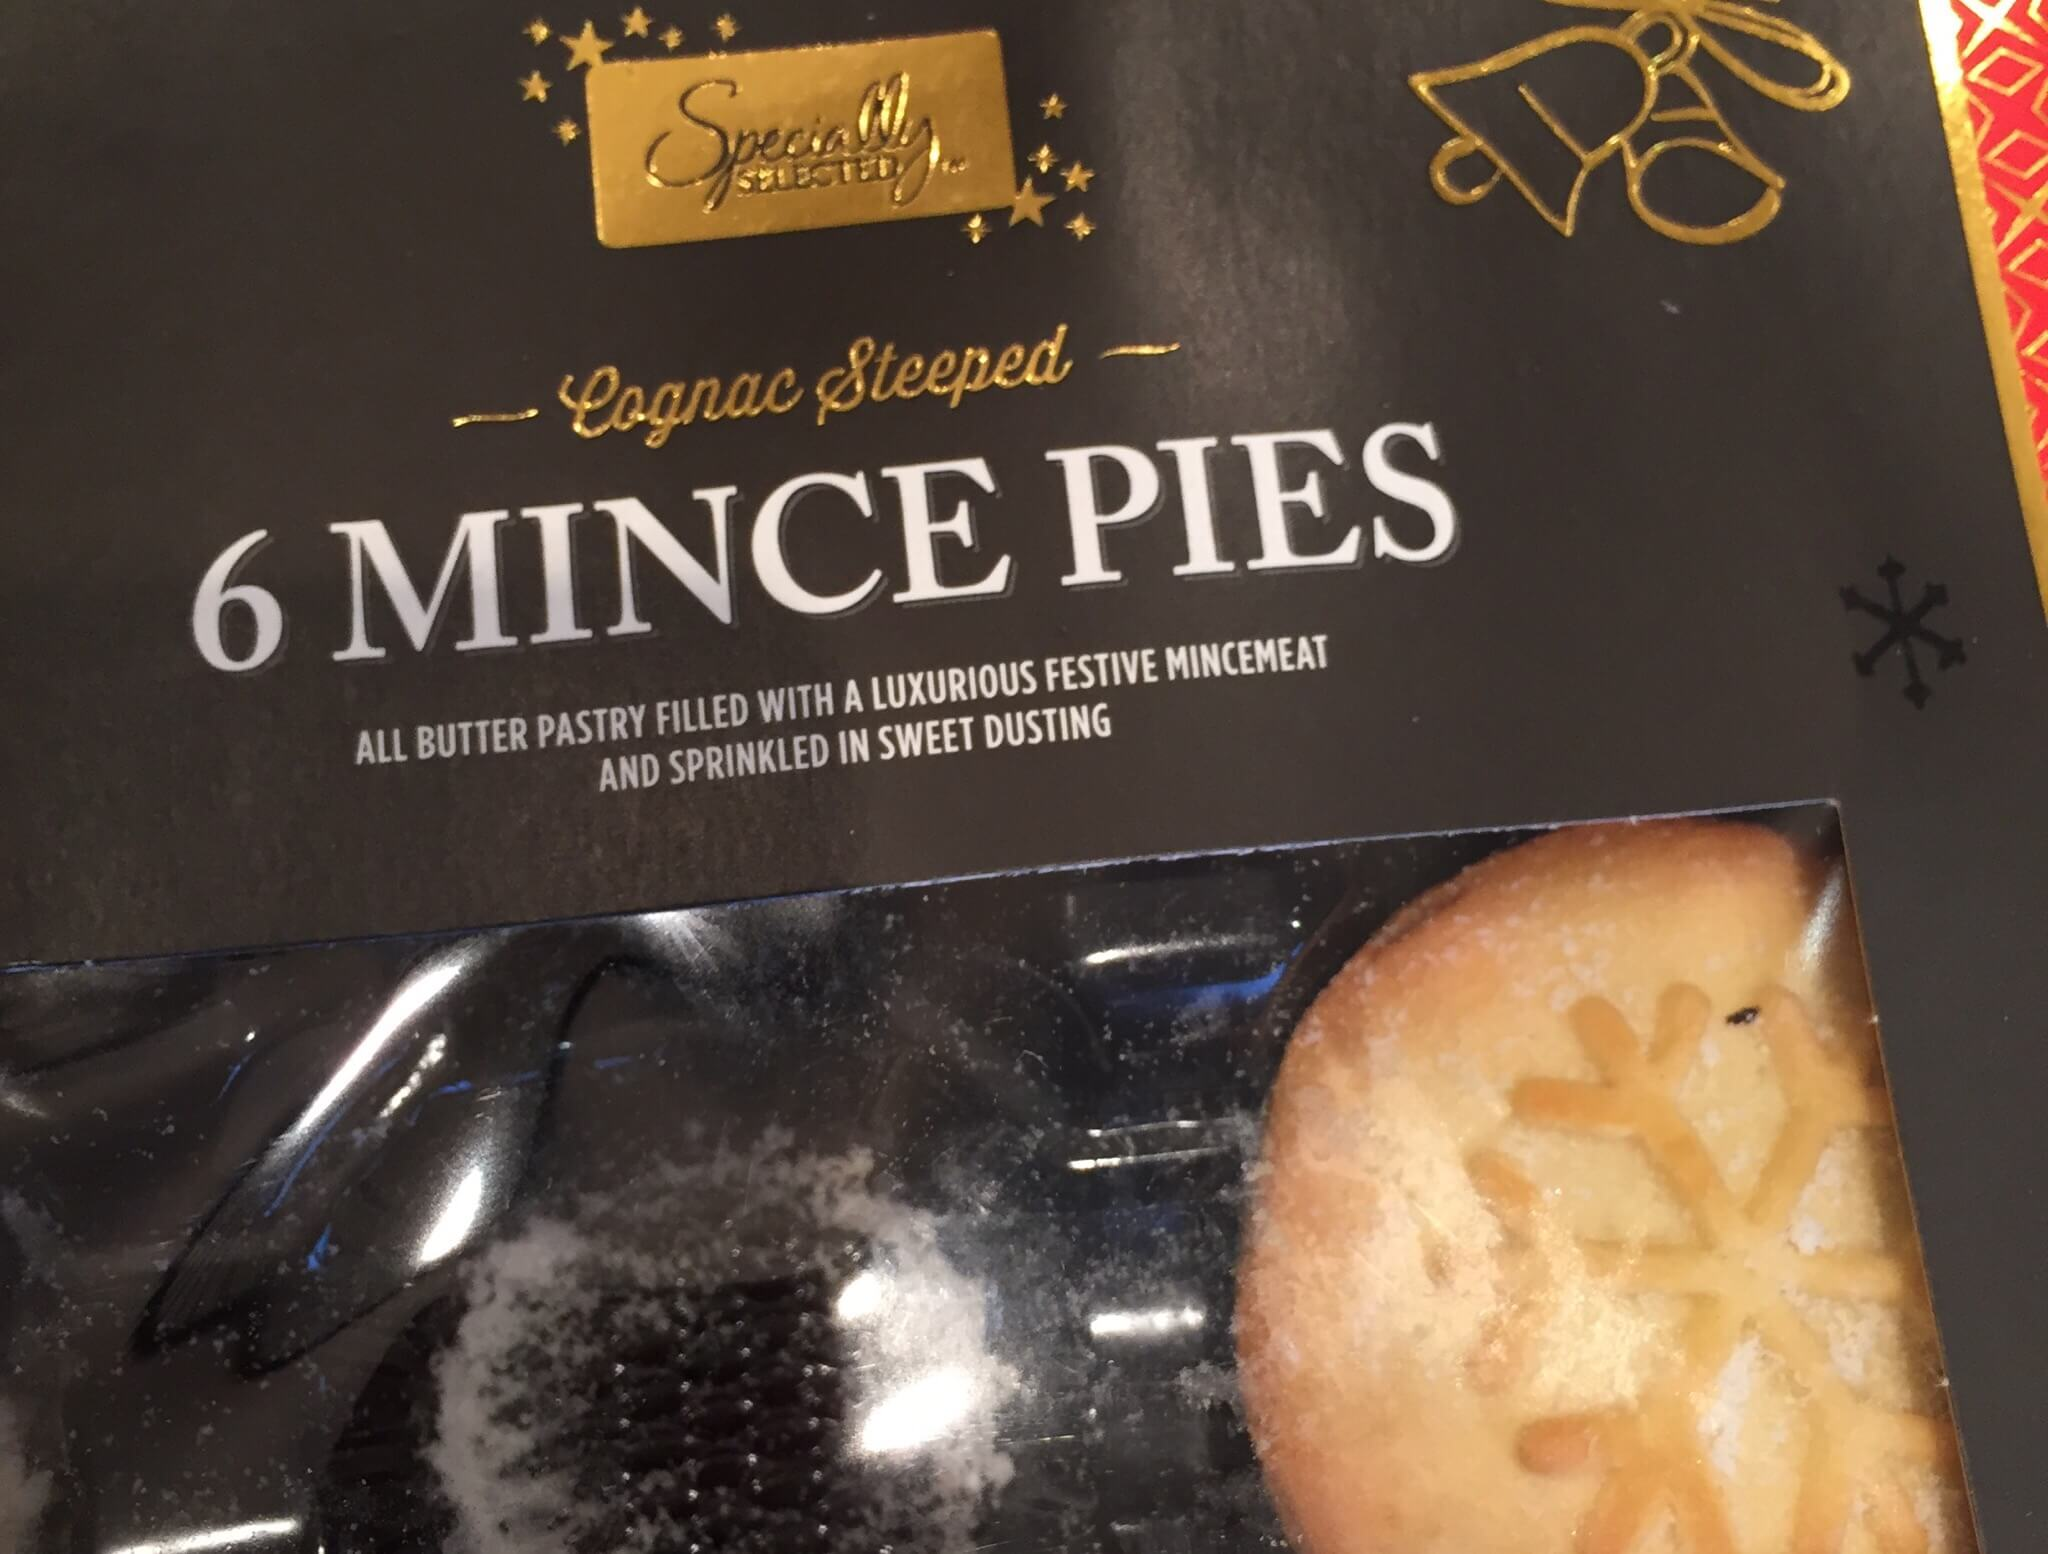 Aldi 'Specially Selected' Cognac Steeped Mince Pie Review